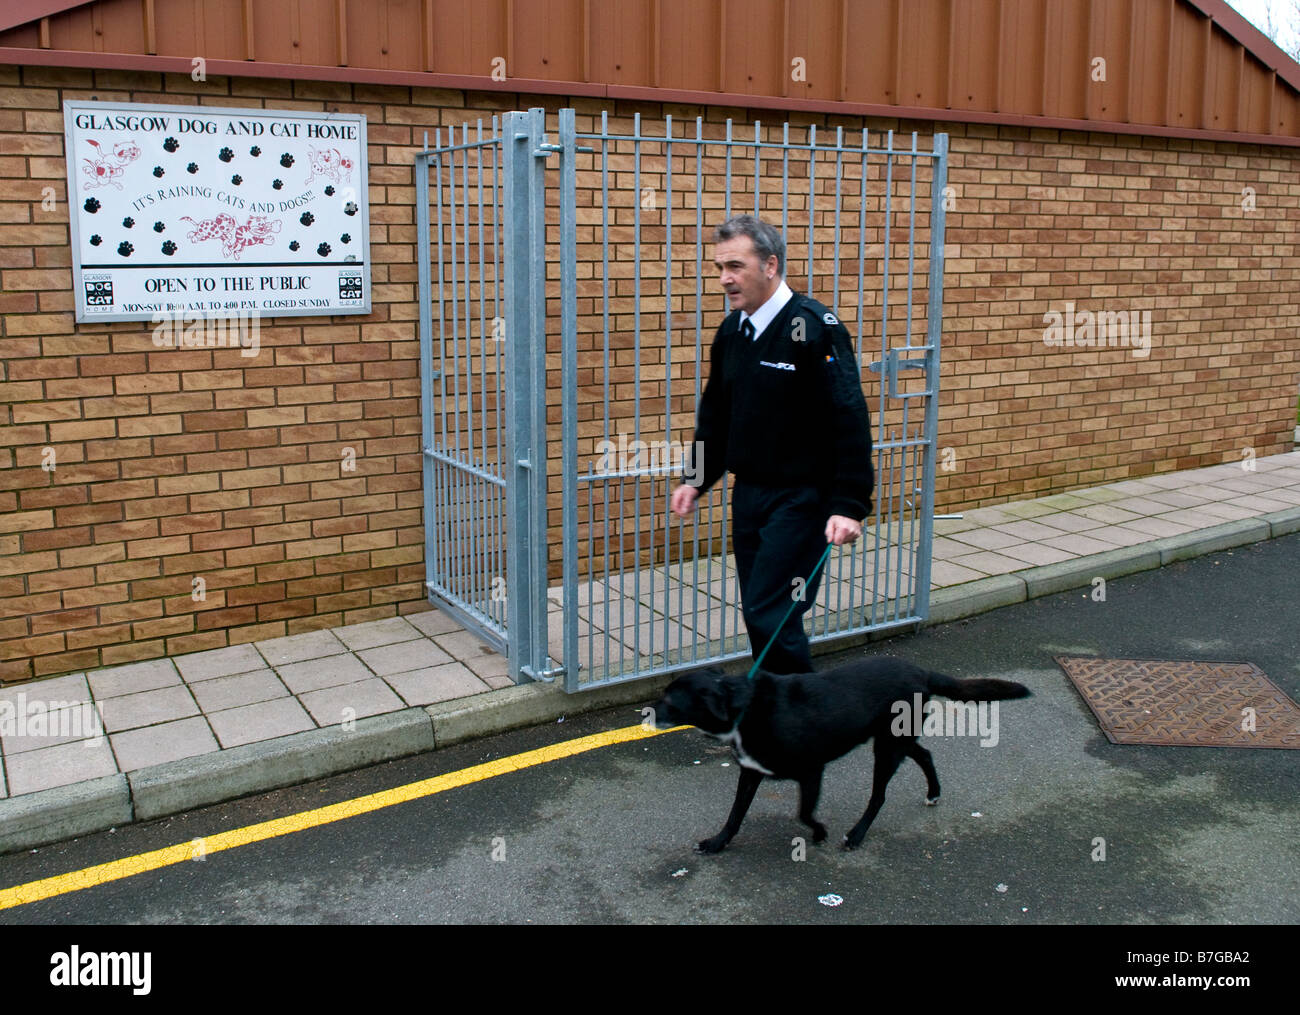 Scottish SPCA officer walking a dog in the Dog and Cat Home Glasgow - Stock Image